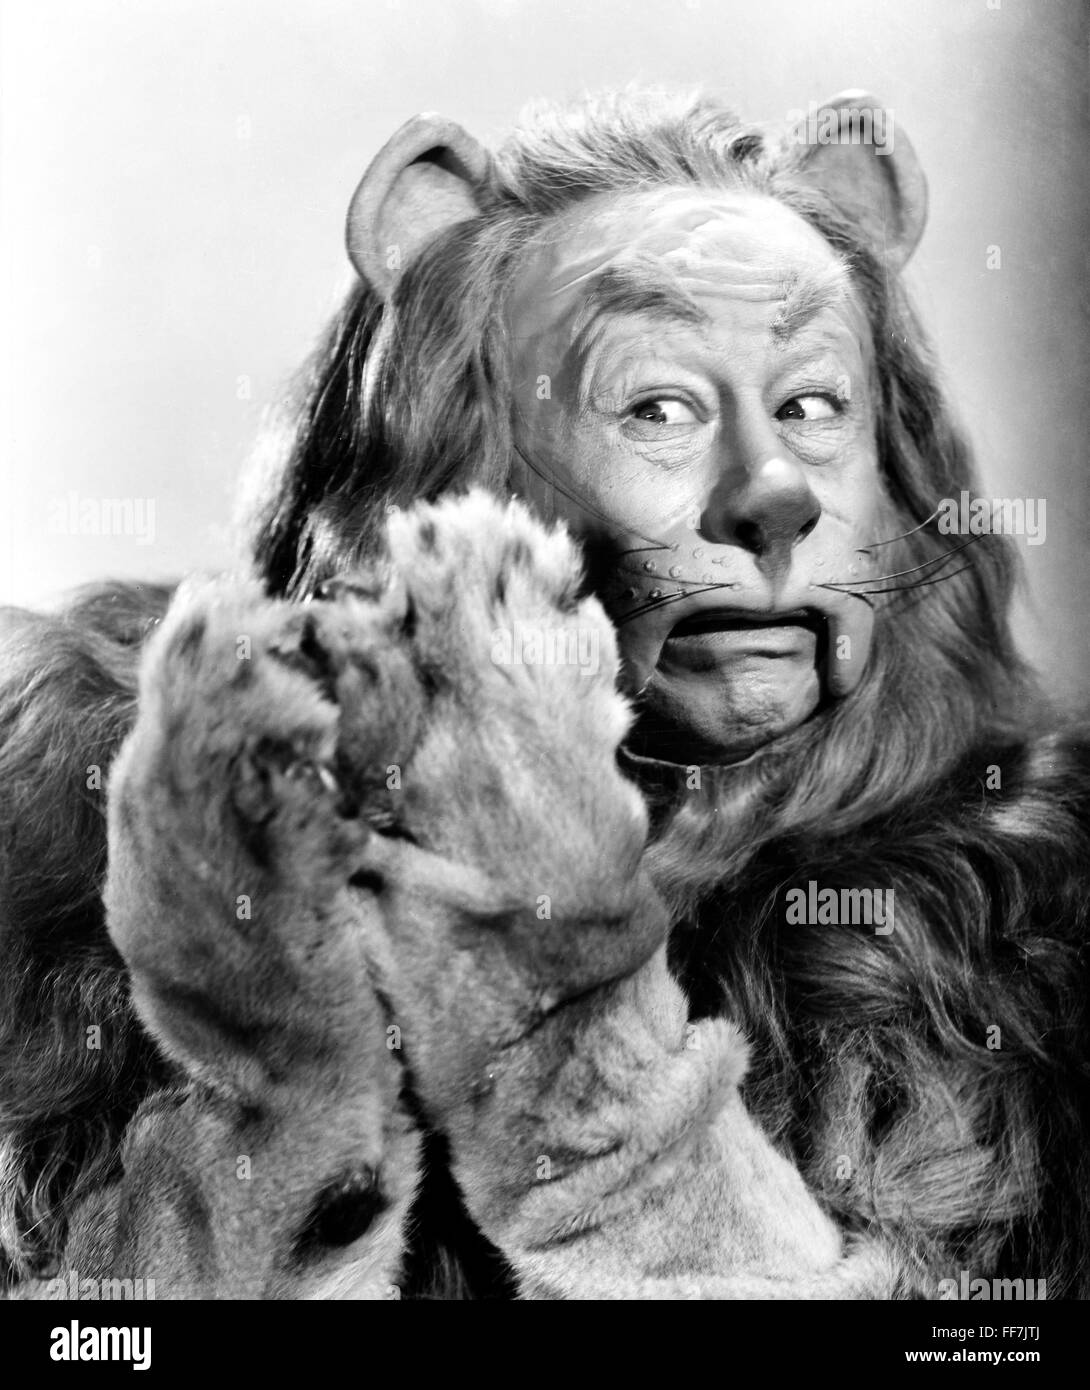 Wizard Of Oz 1939 Nbert Lahr As The Cowardly Lion In Mgm Production